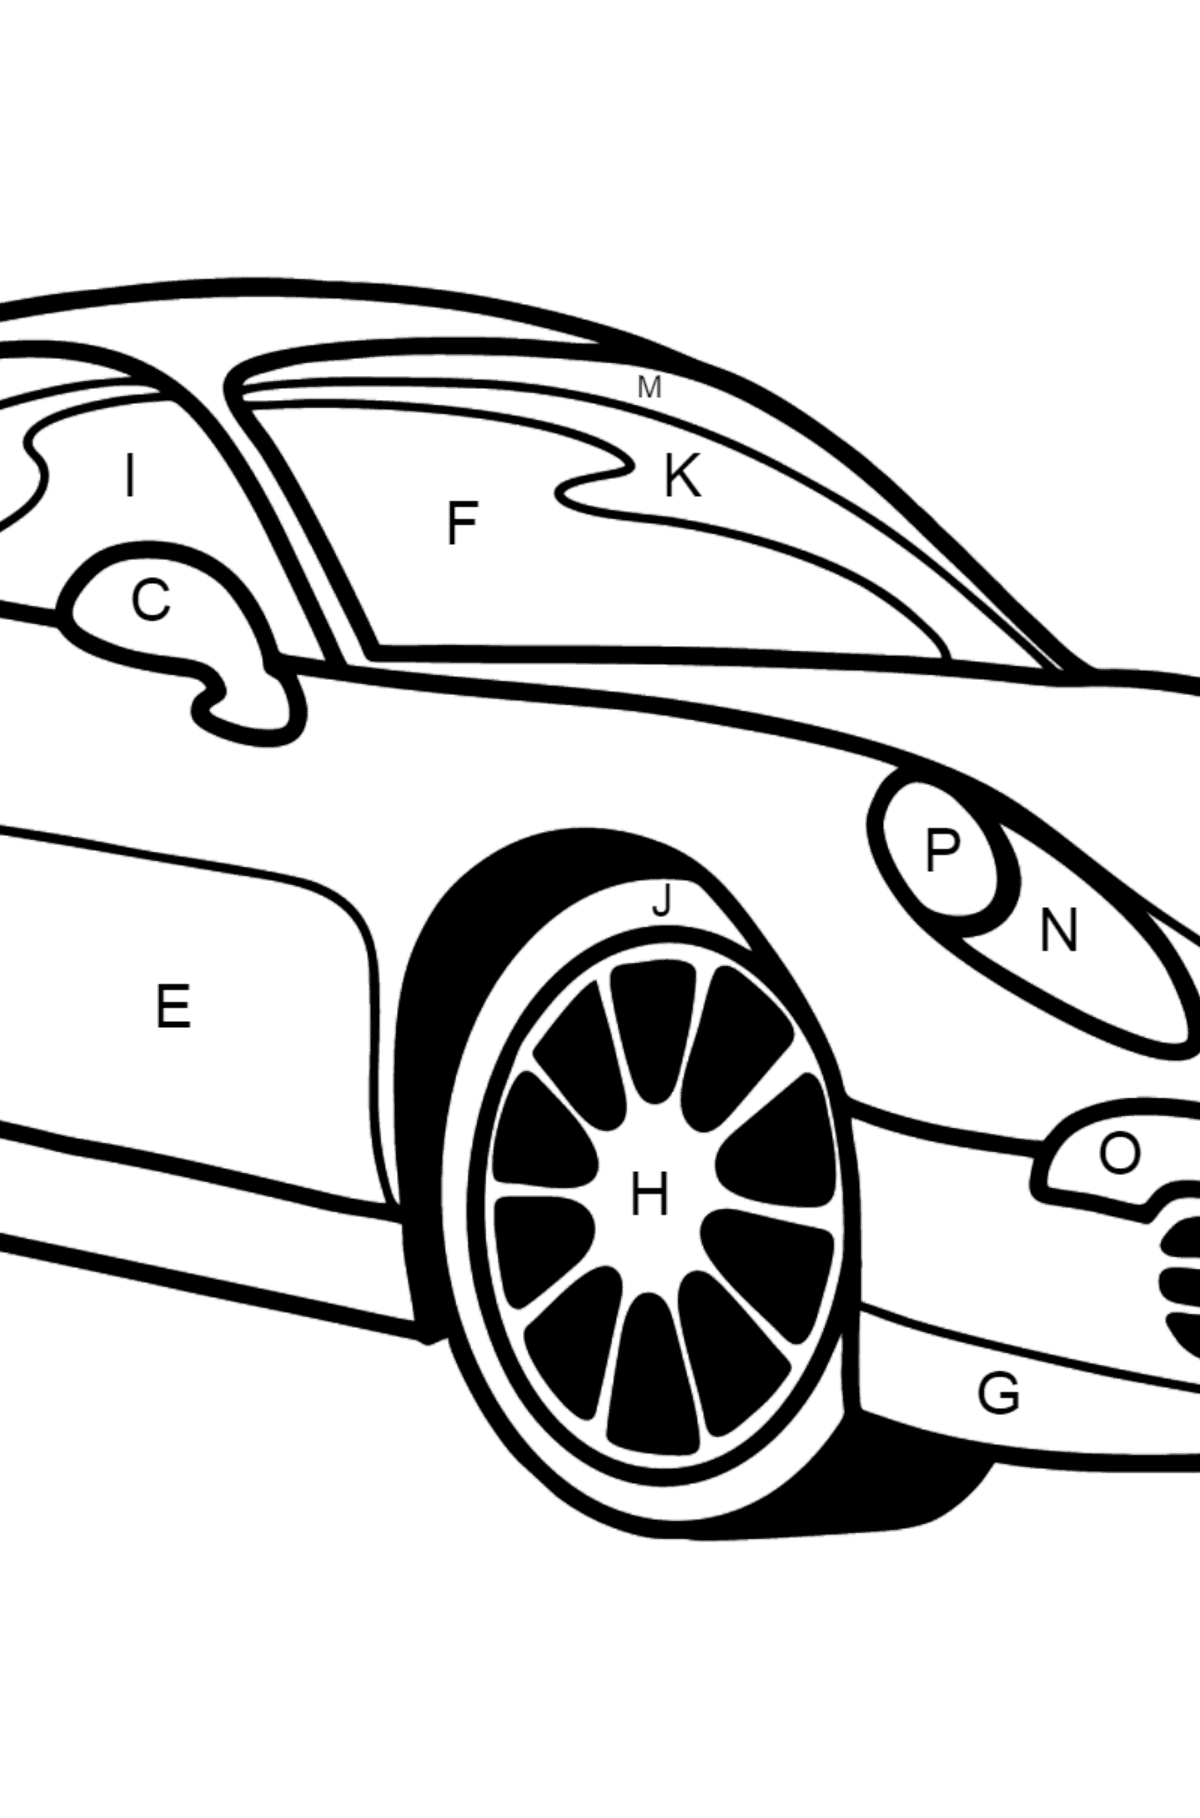 Porsche Cayman Sports Car coloring page - Coloring by Letters for Kids